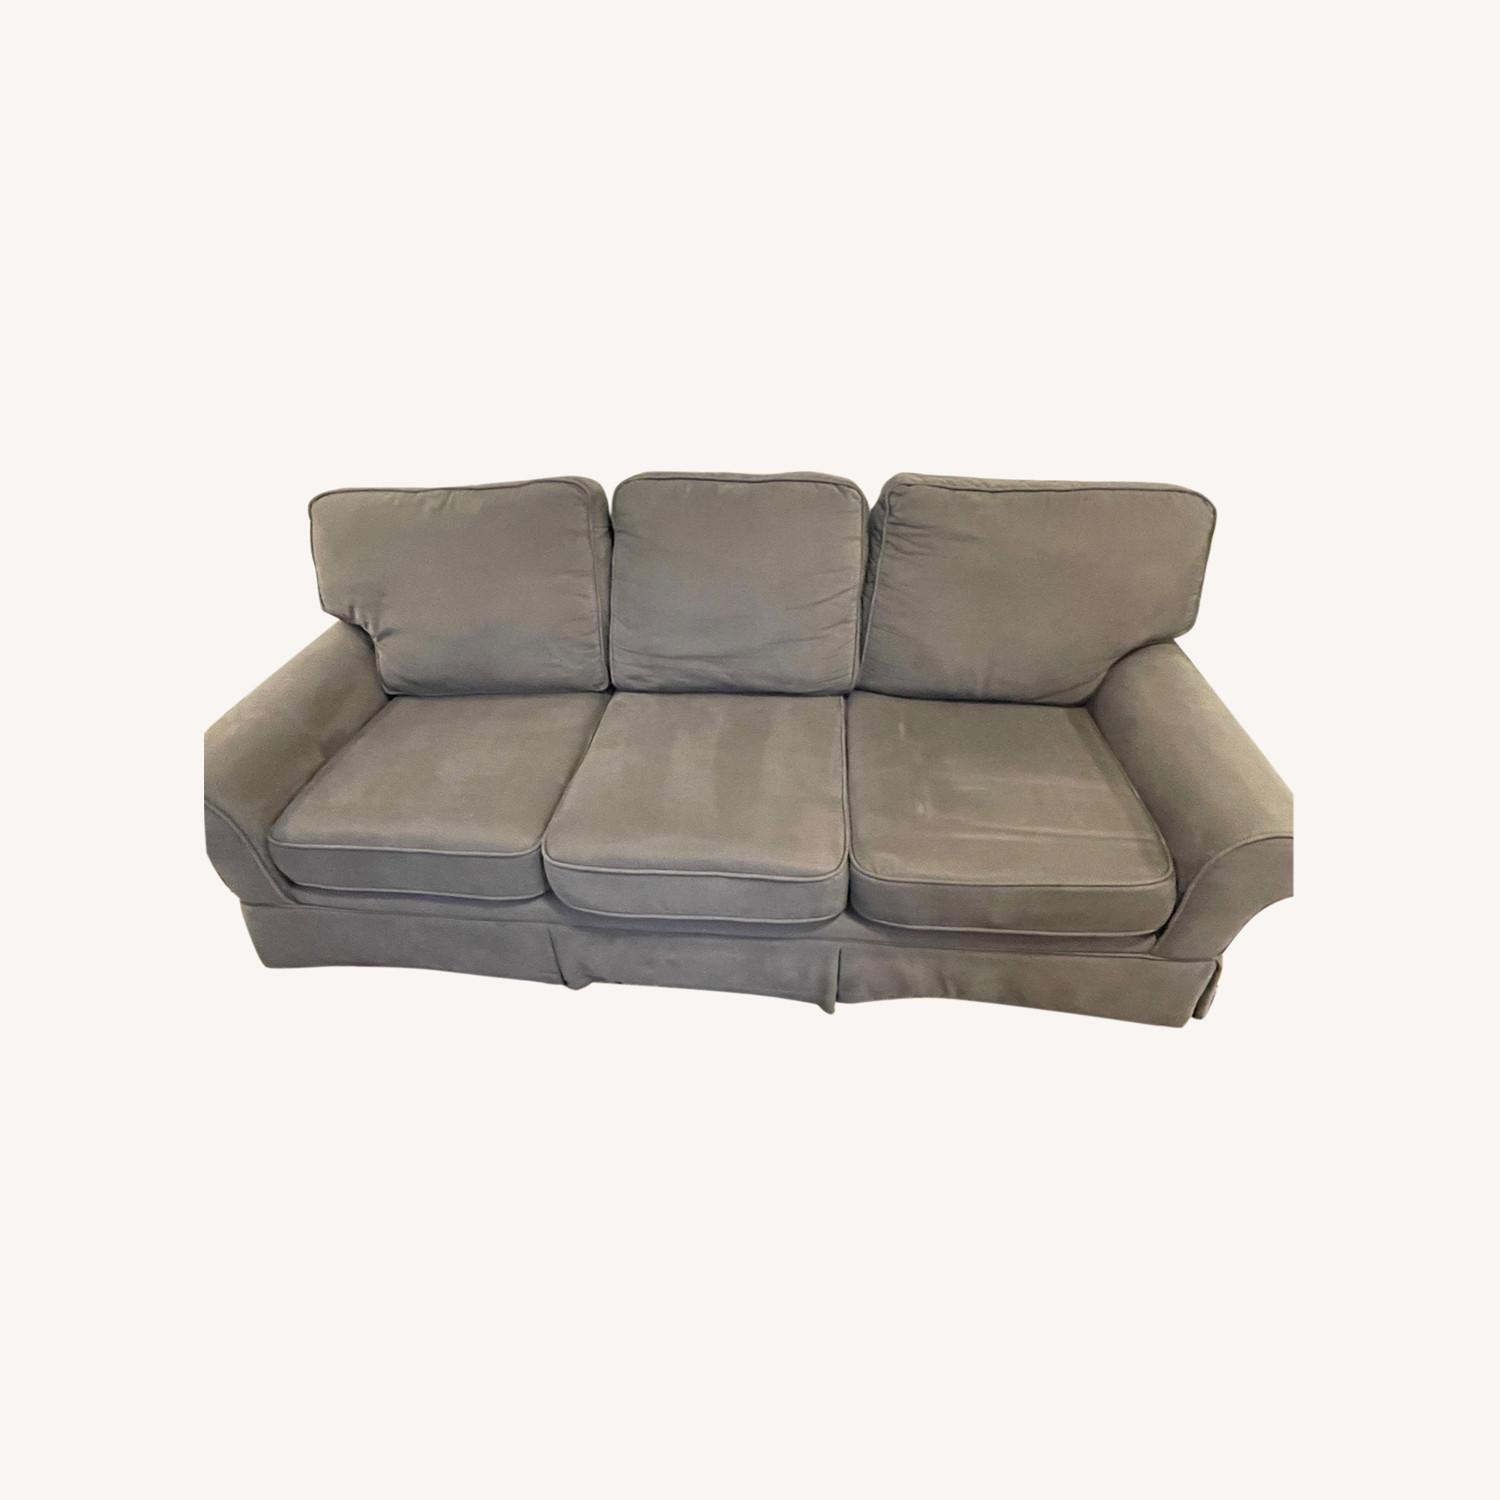 Bob's Discount Furniture 90 Couch with Queen Sleeper - image-0